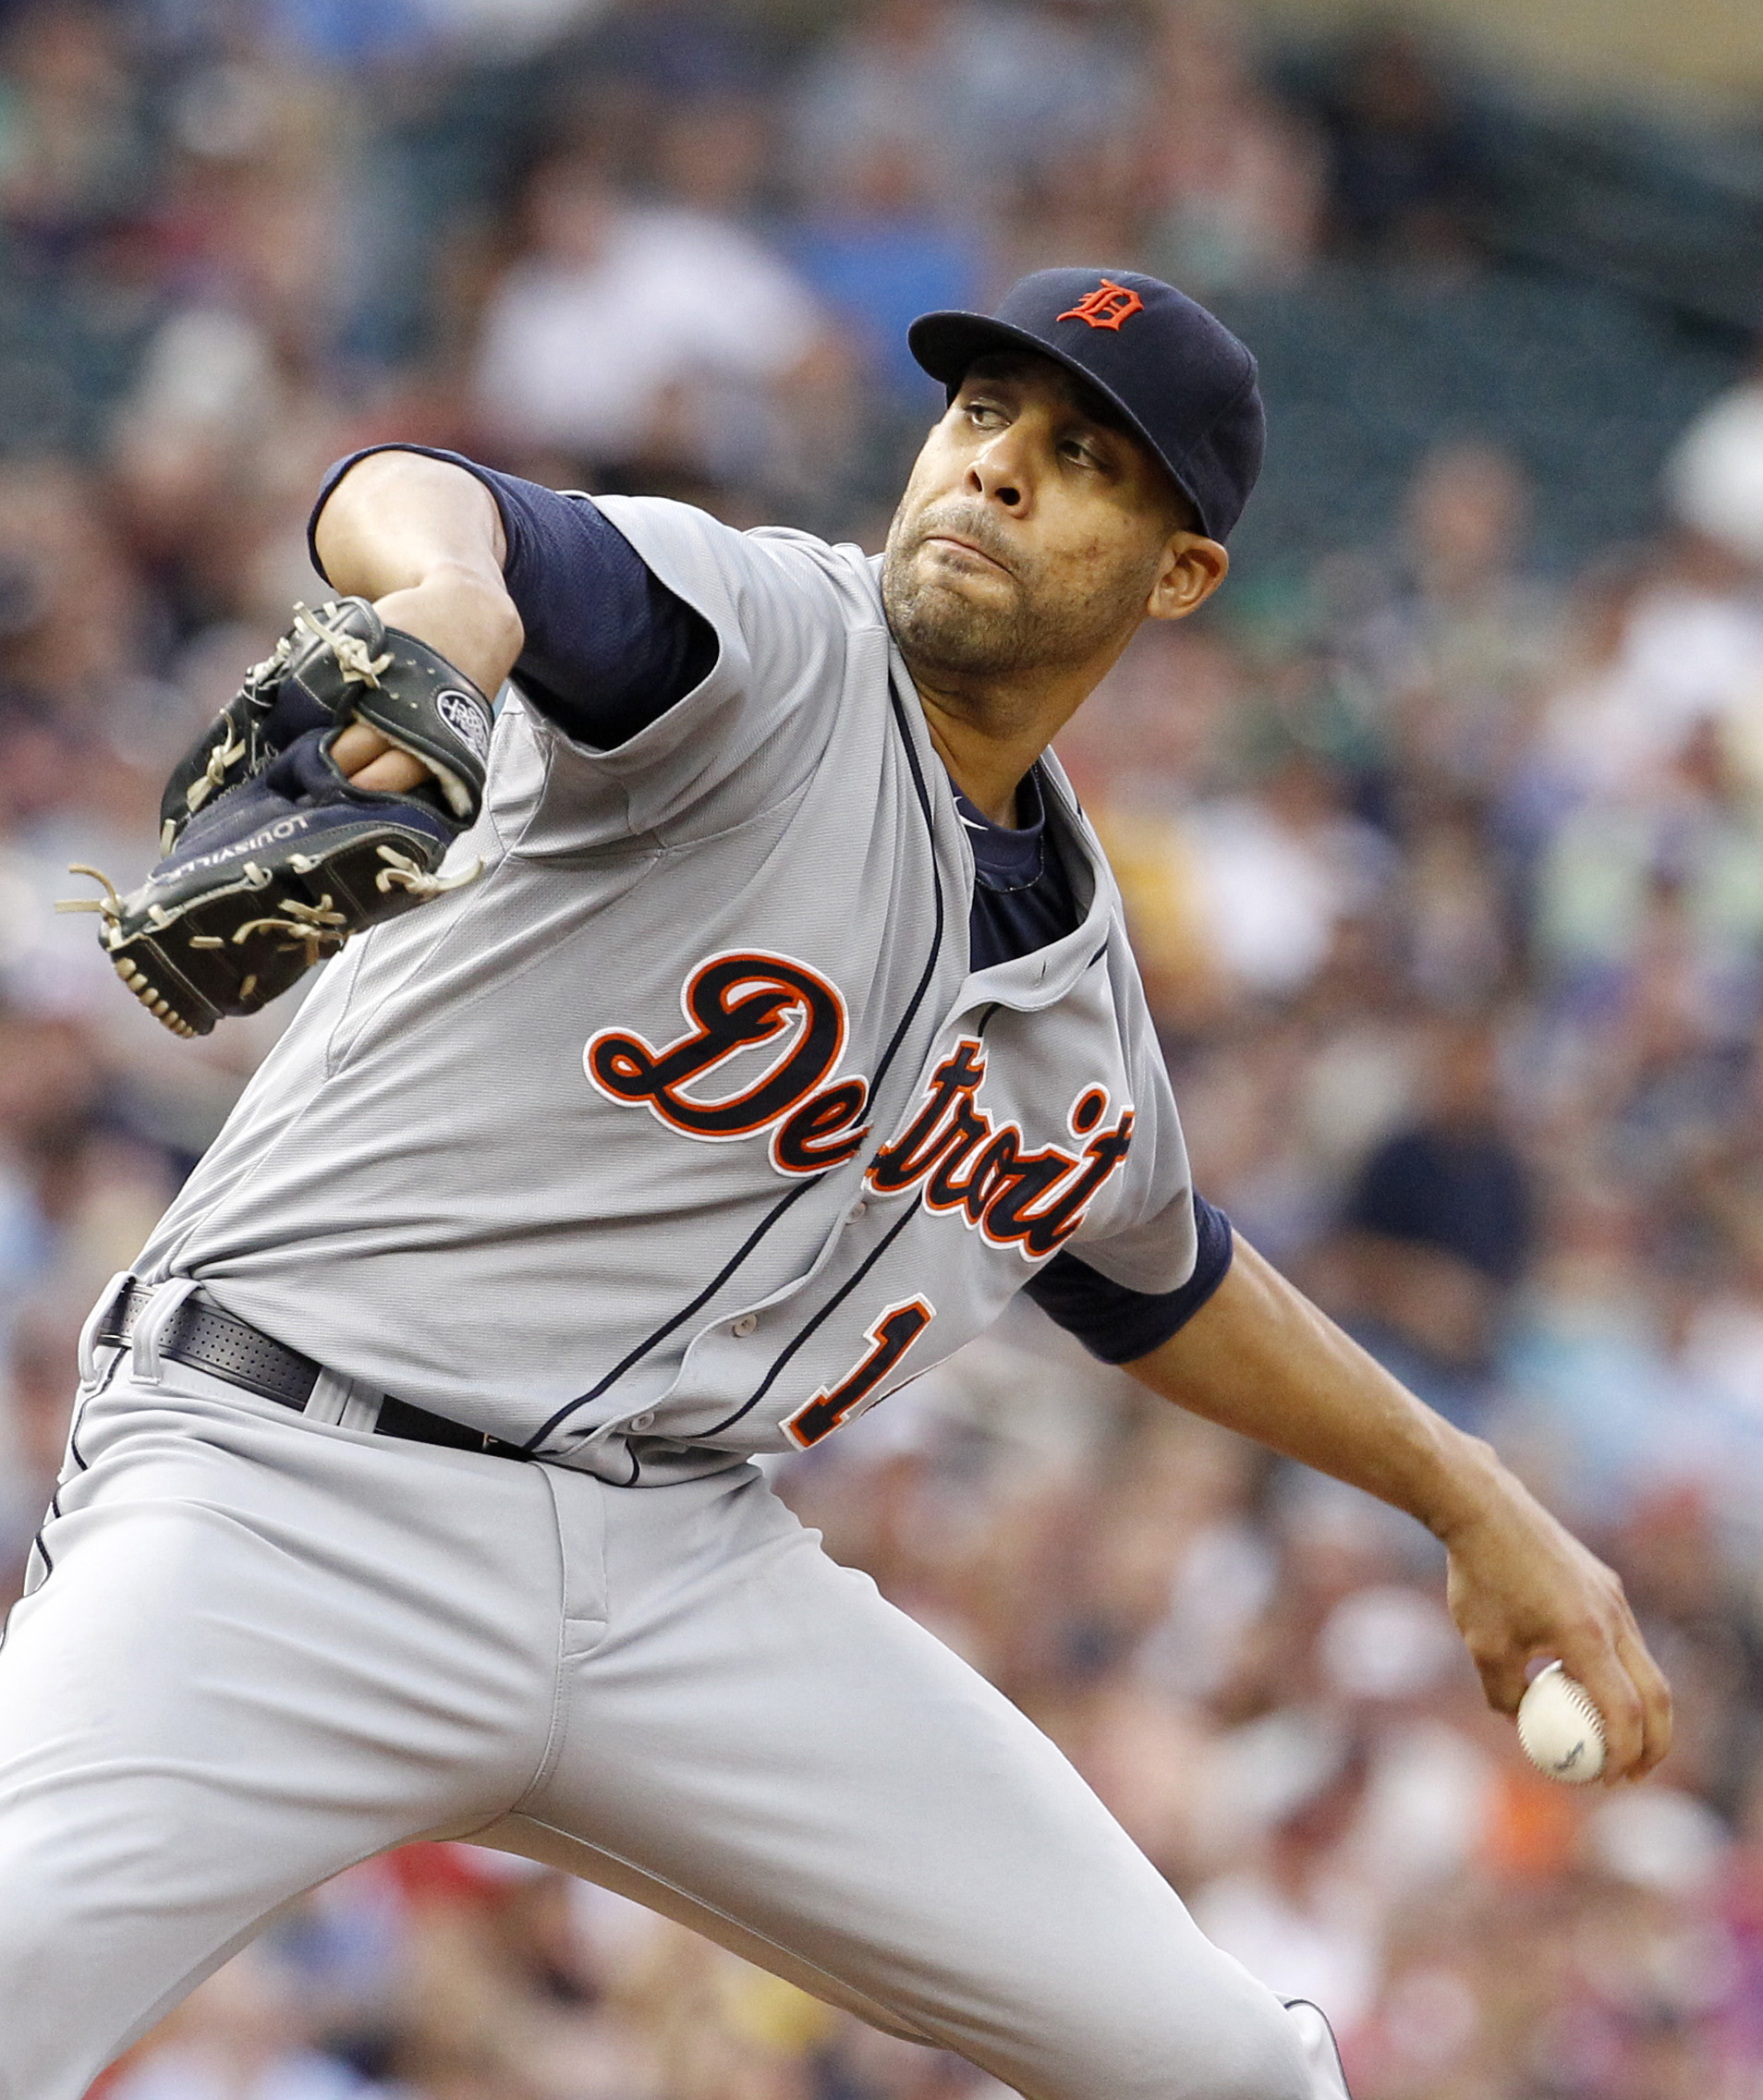 Detroit Tigers starting pitcher David Price delivers to the Minnesota Twins during the third inning of a baseball game in Minneapolis, Thursday, July 9, 2015. (AP Photo/Ann Heisenfelt)